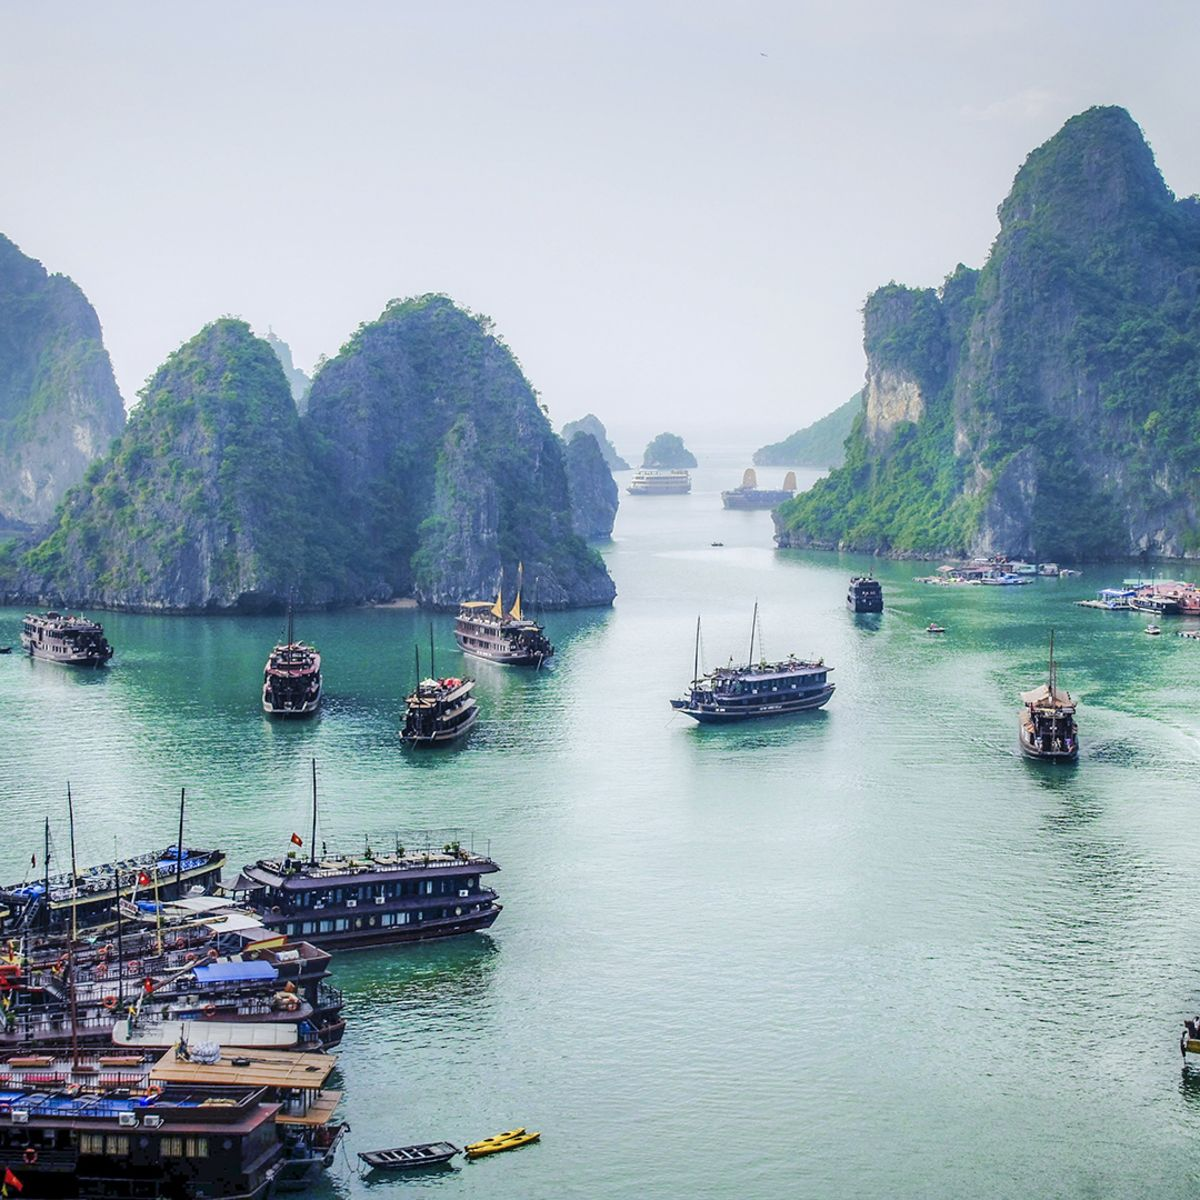 City tour - Hanoi - Vietnam - Drive and Cruise in Halong Bay!